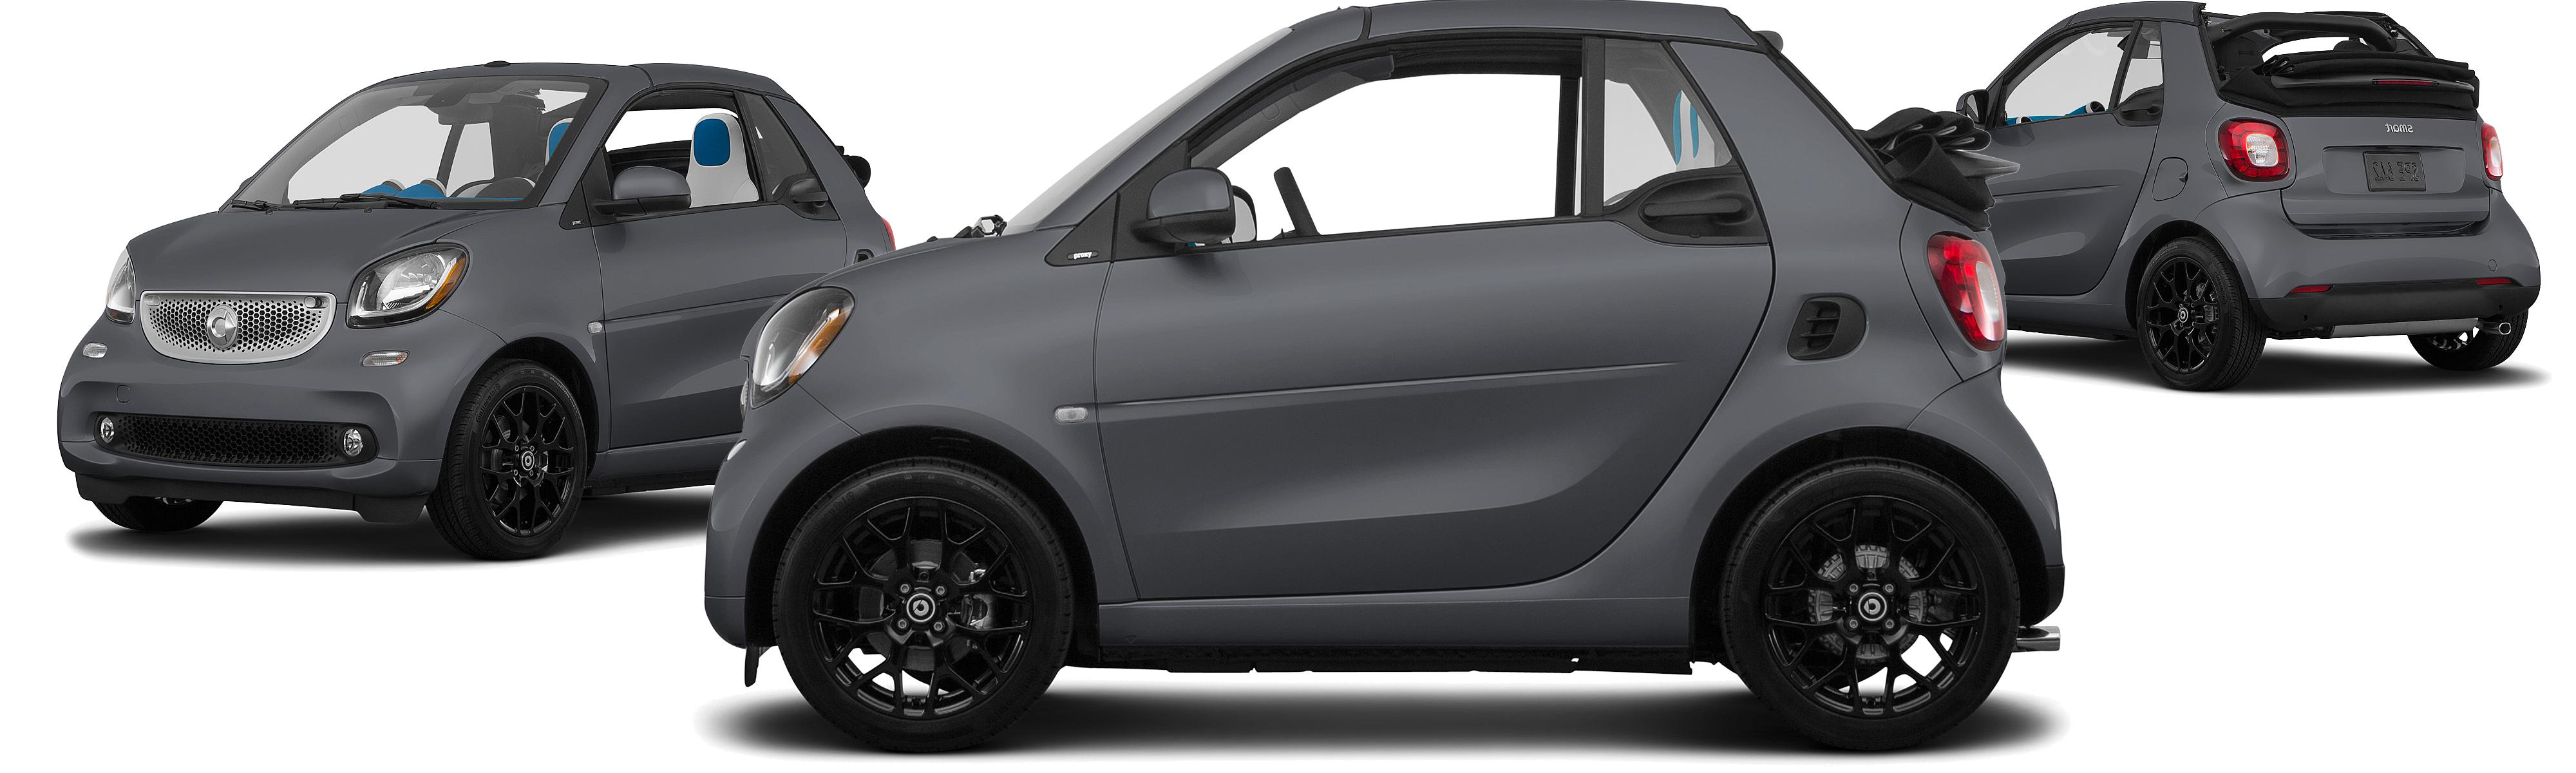 2017 Smart Fortwo Passion 2dr Cabriolet Research Groovecar